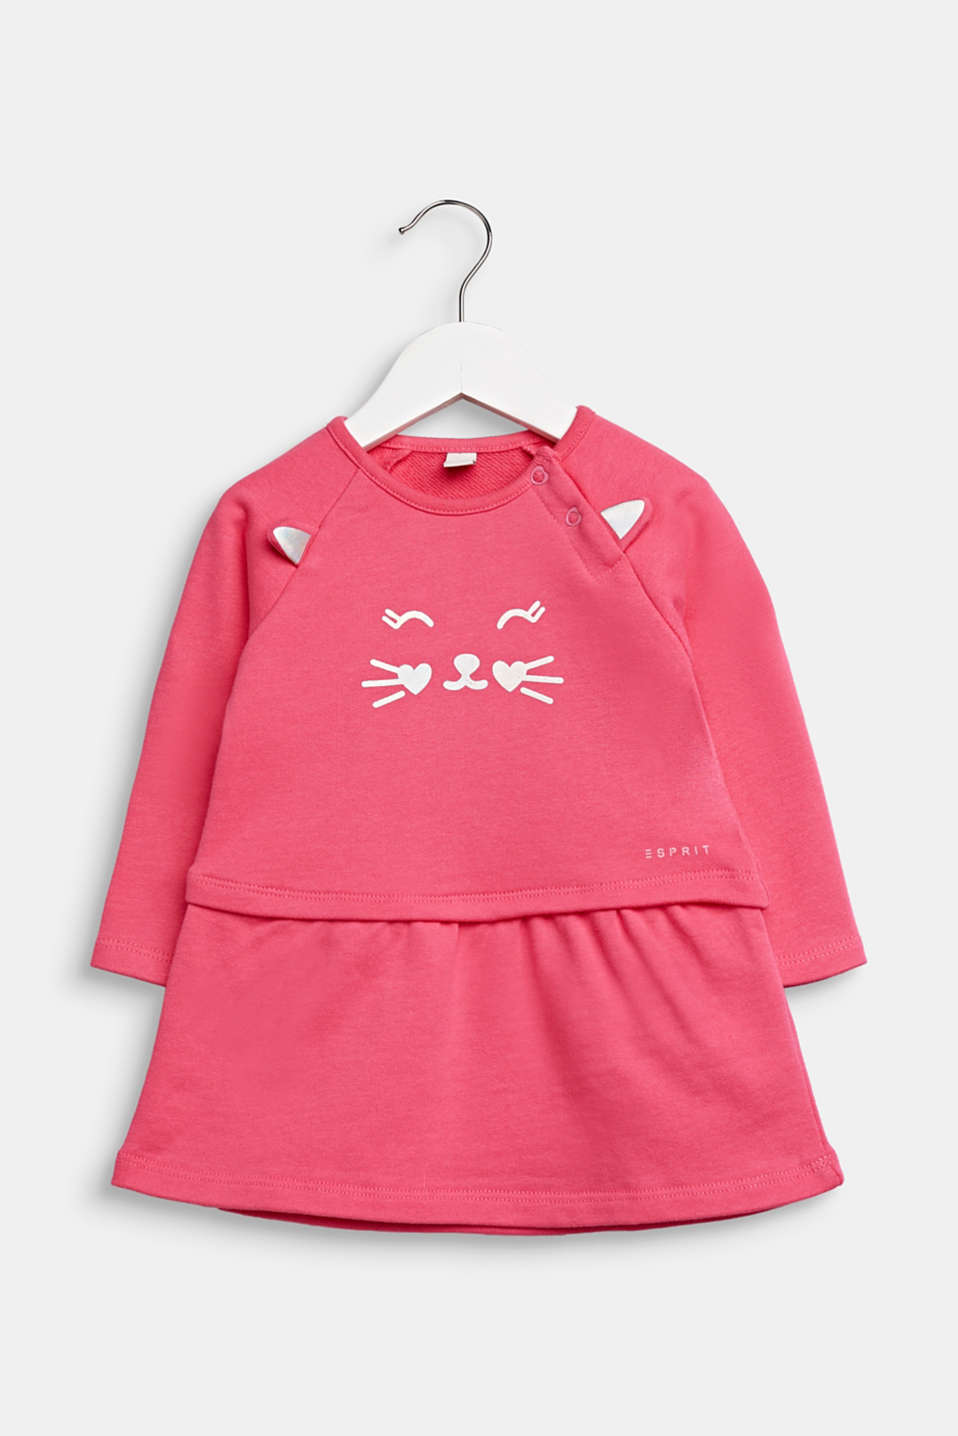 Sweatshirt dress with a cat face, 100% cotton, LCCANDY PINK, detail image number 0